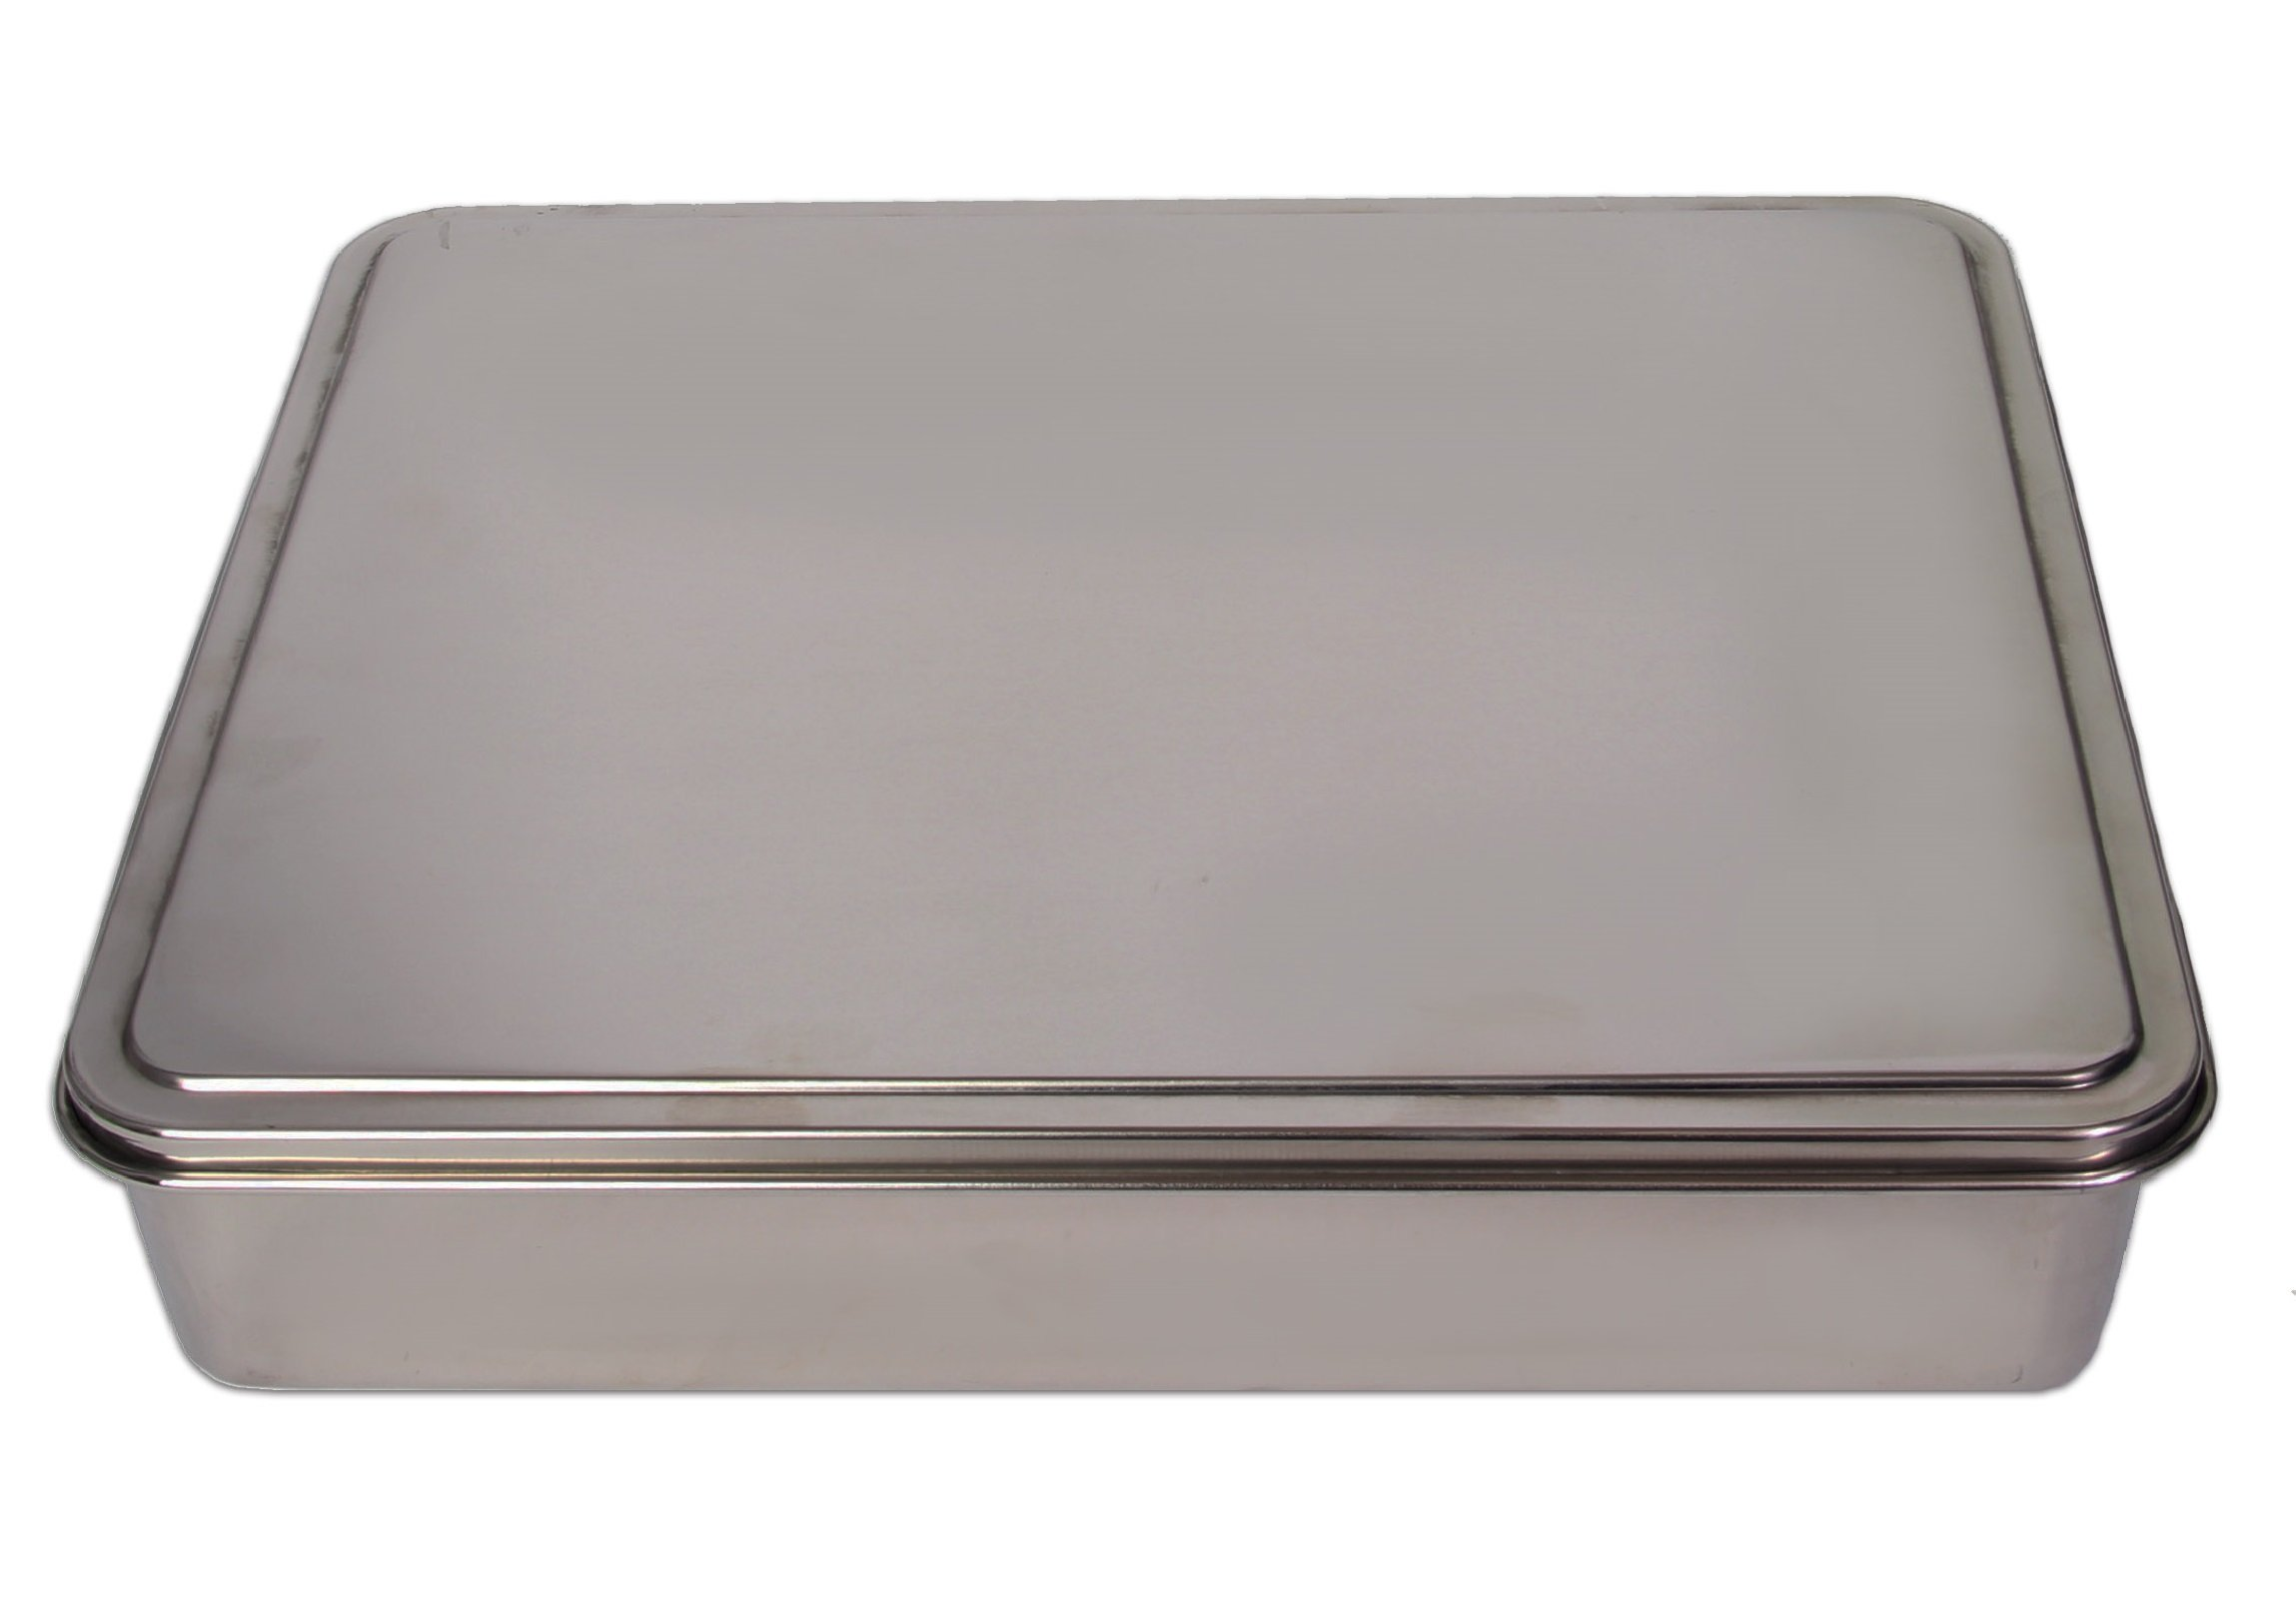 YBM HOME Stainless Steel Covered Cake Pan, Silver (Extra Large-2403) by YBM HOME (Image #1)